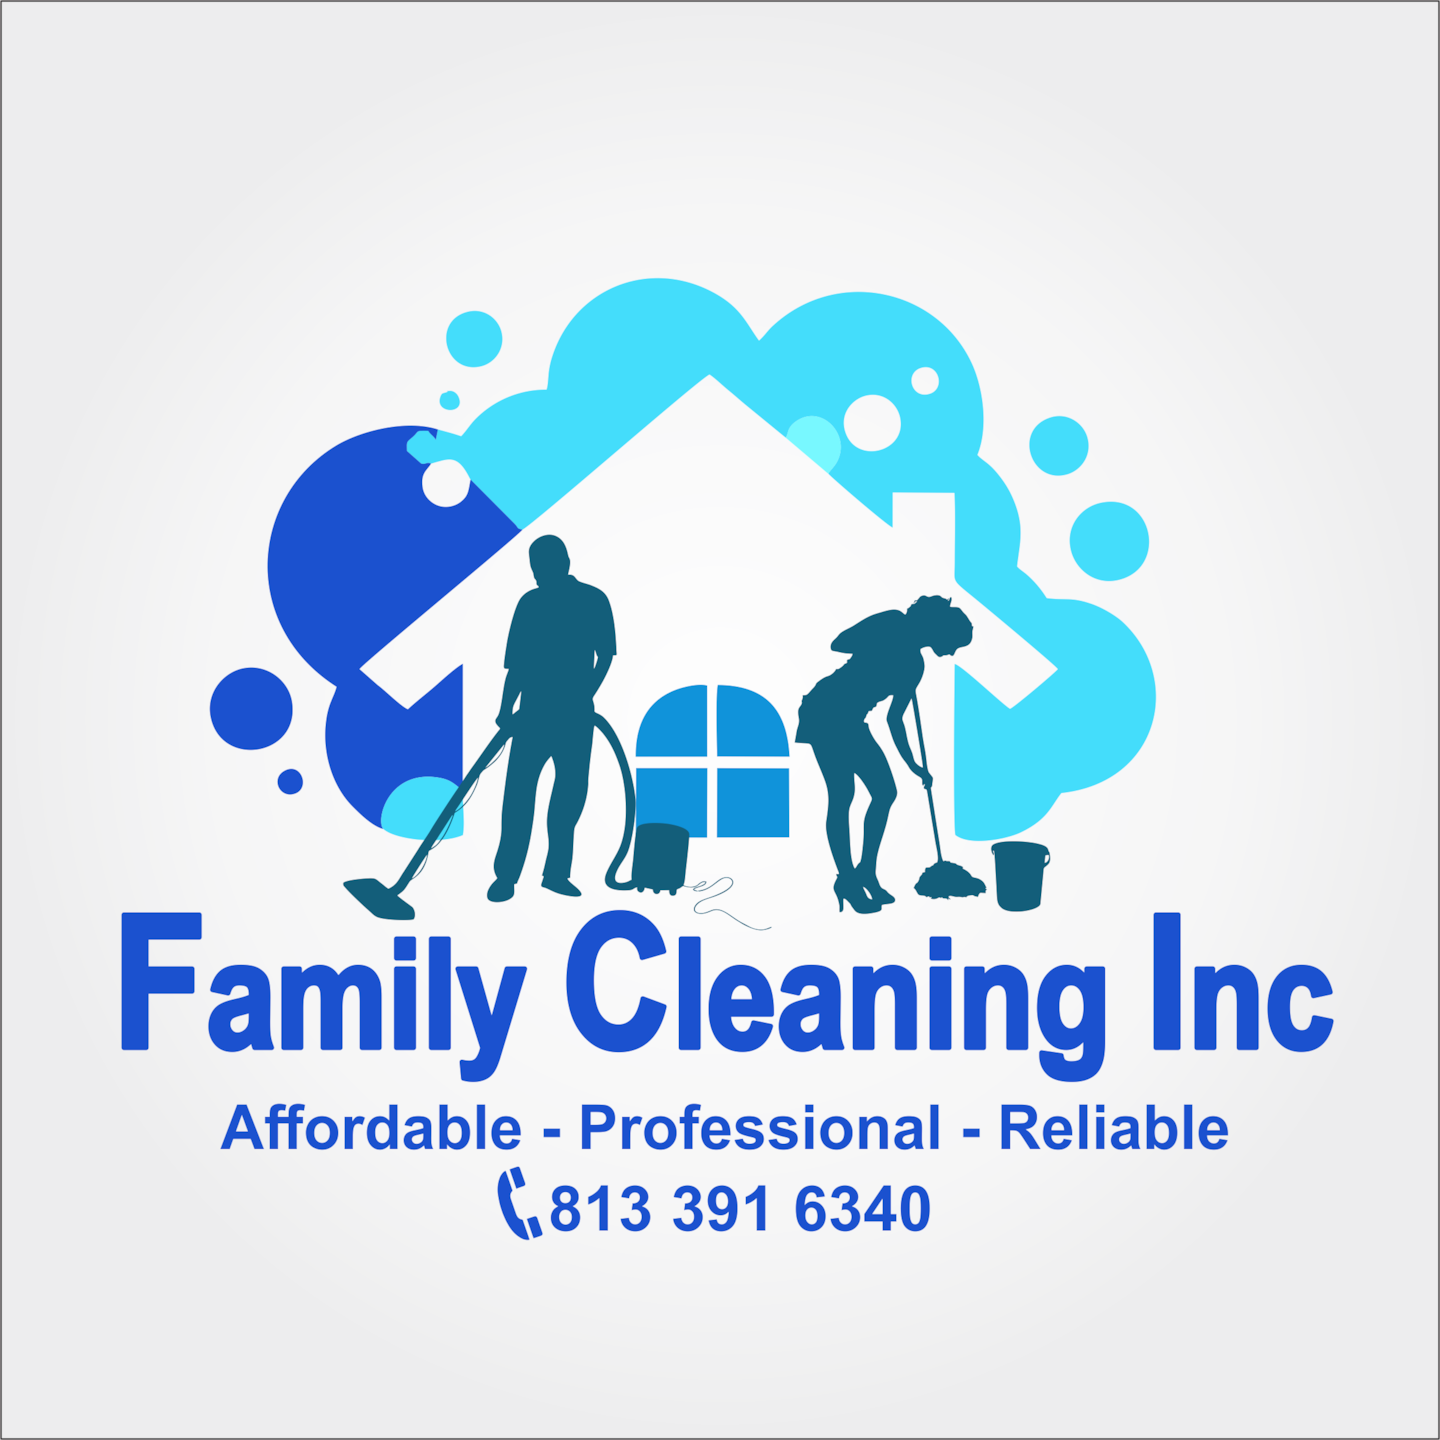 Family Cleaning Inc